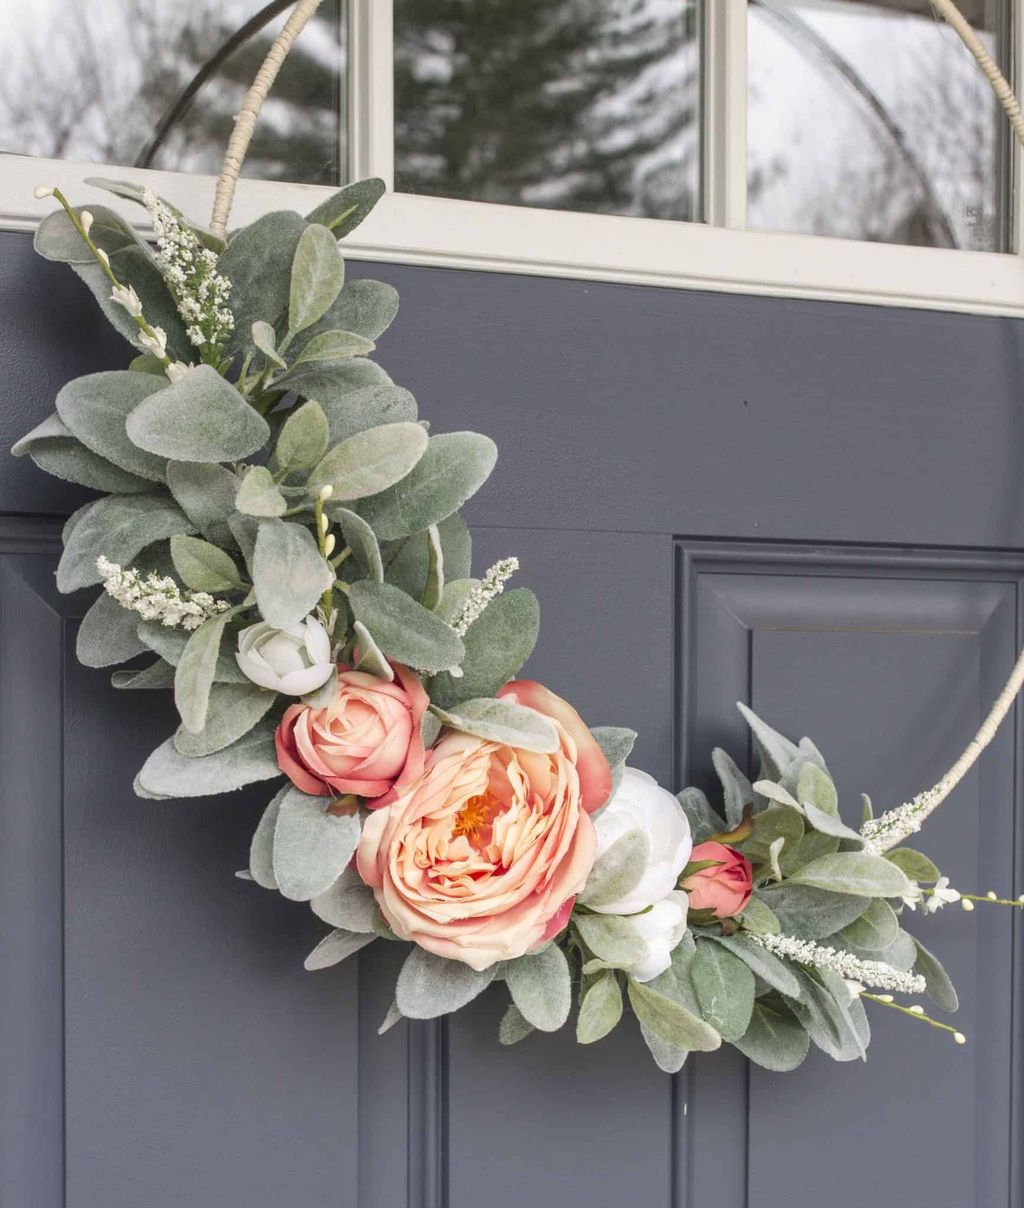 Inspiring Summer Wreath Design Ideas You Should Copy 16